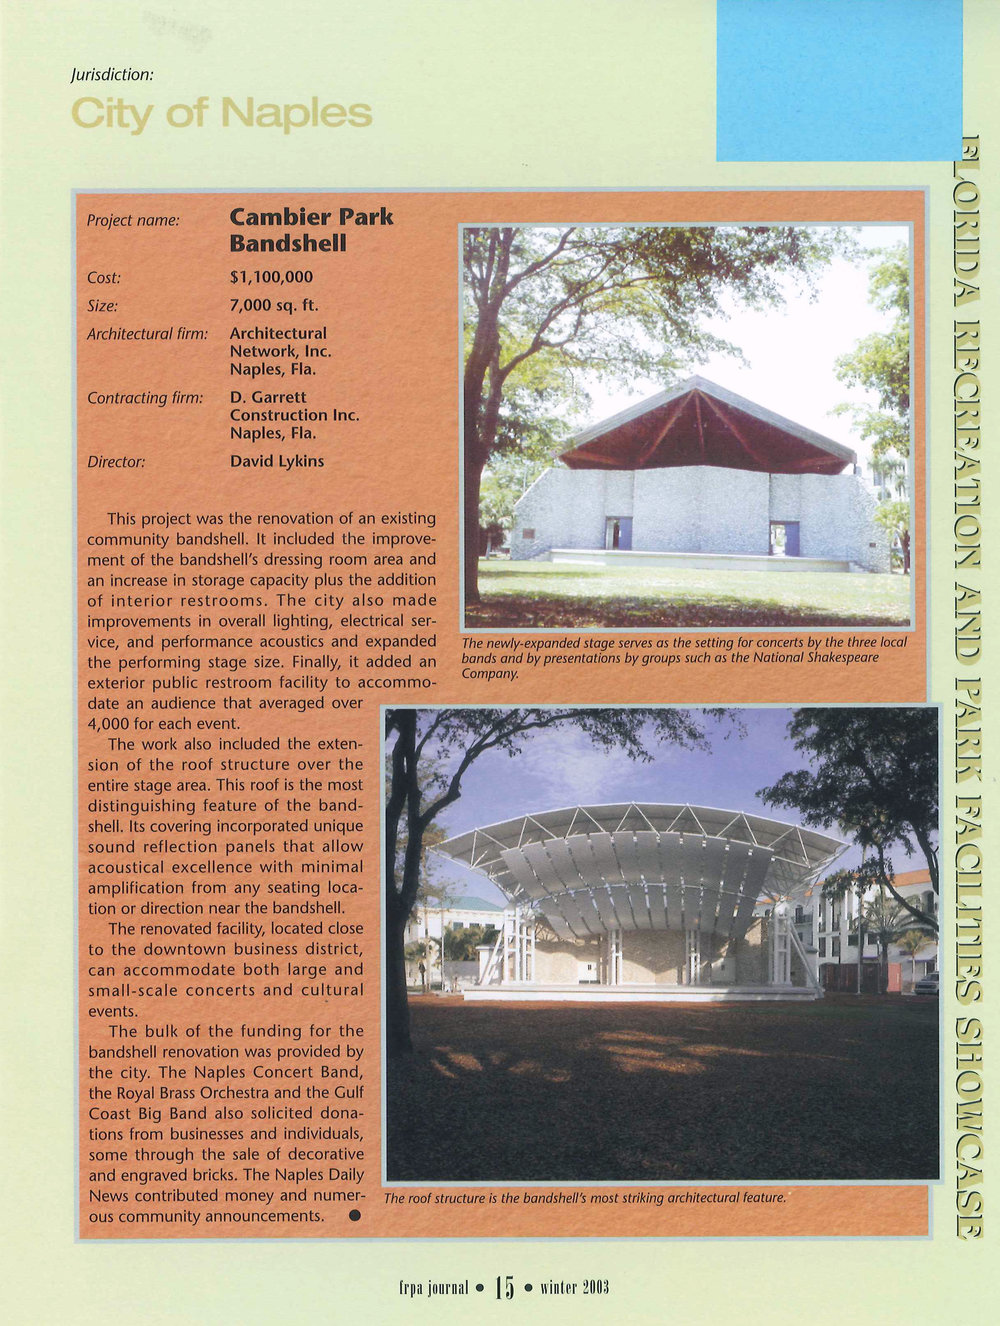 2003 FRPA Journal - Naples Cambier Park Bandshell.jpg